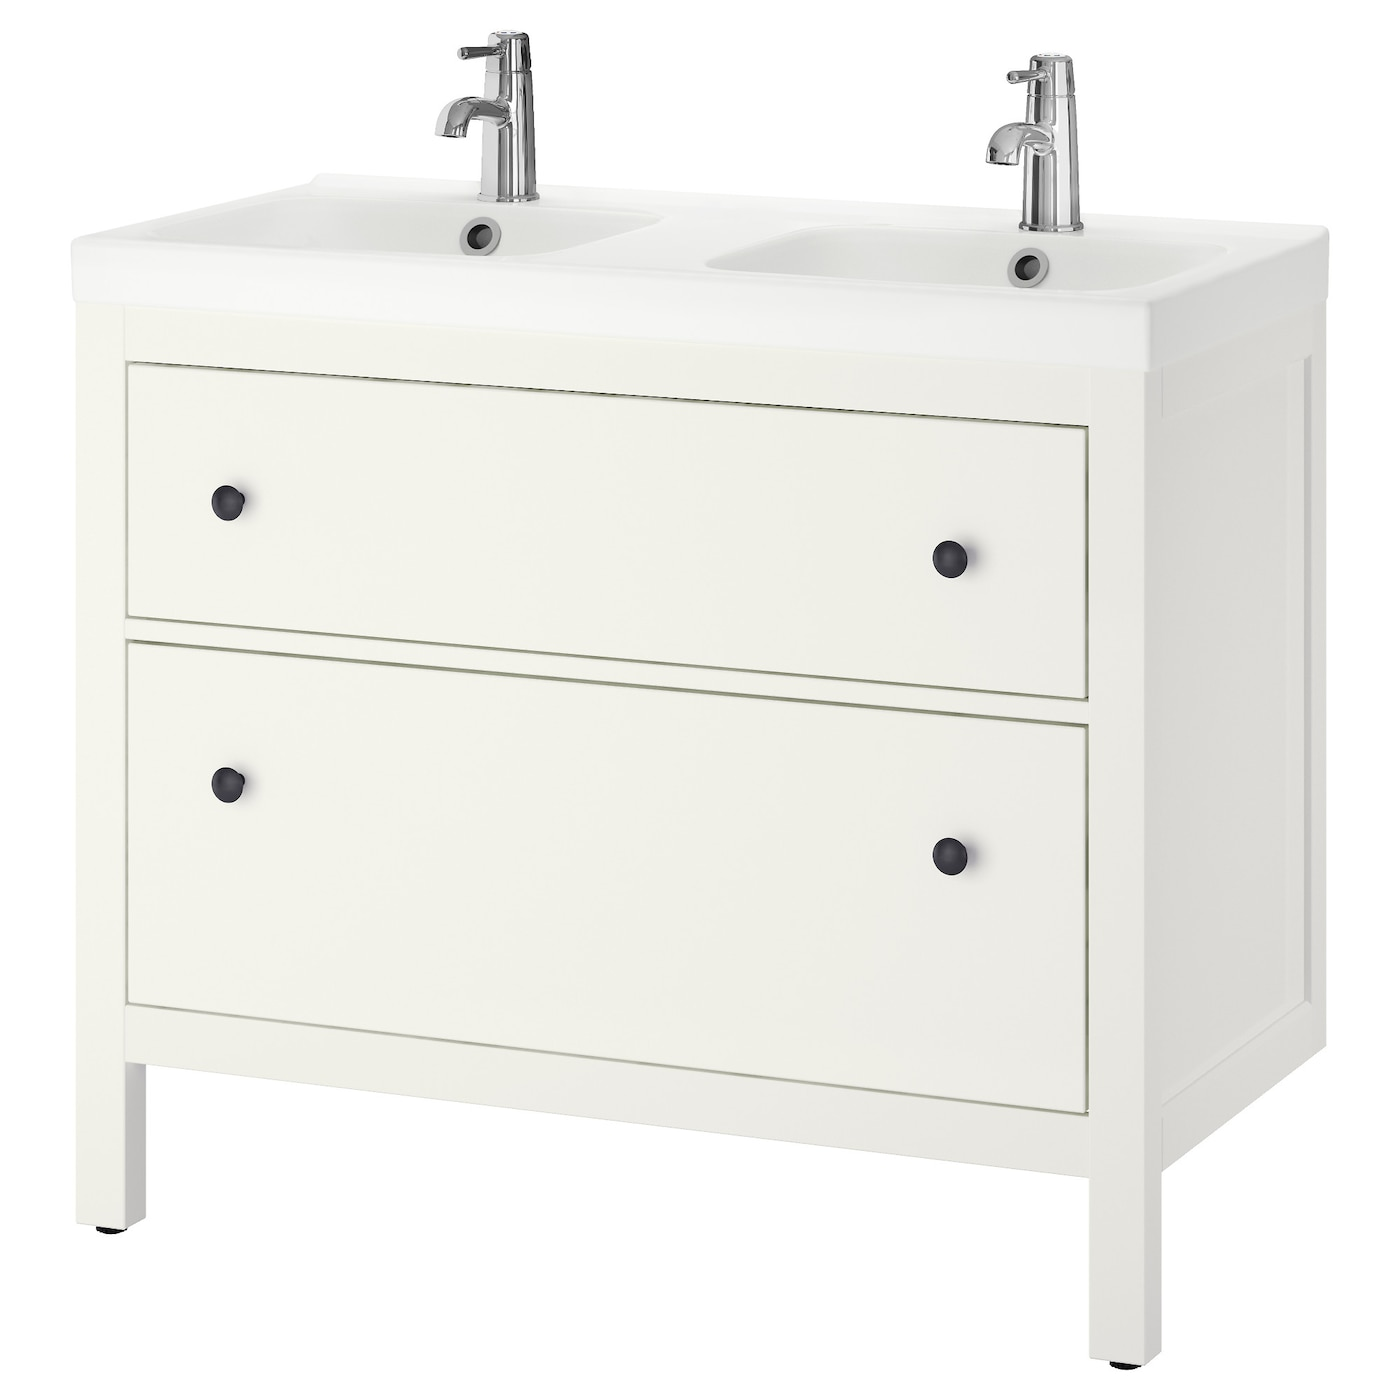 odensvik hemnes wash stand with 2 drawers white 100x49x89. Black Bedroom Furniture Sets. Home Design Ideas